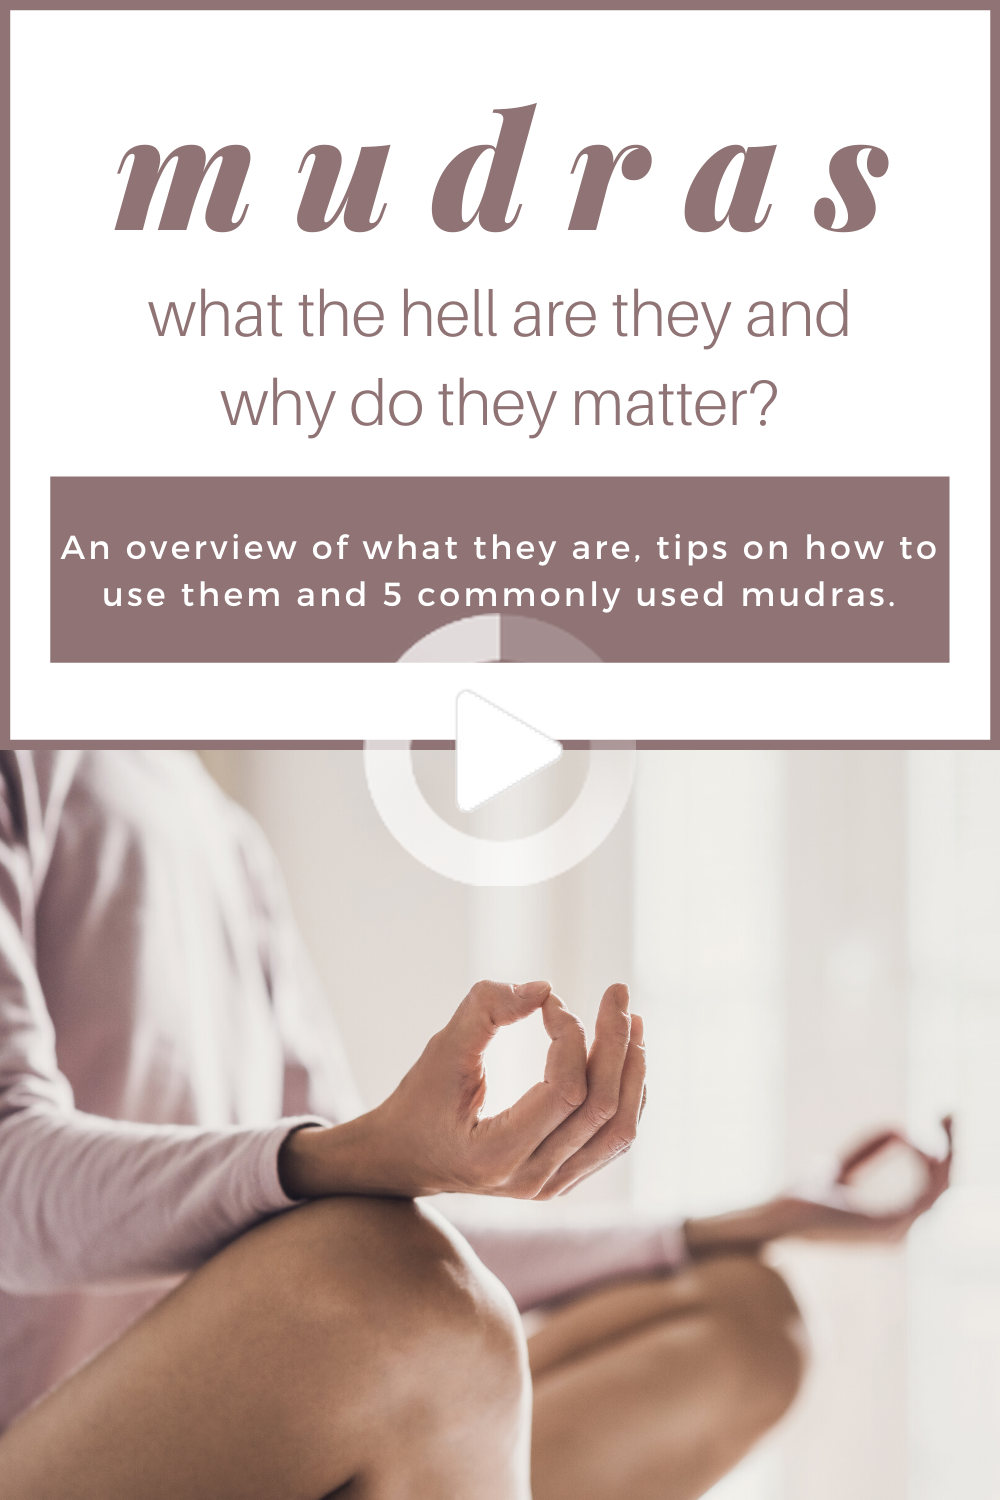 Common Yoga Mudras What They Mean And How To Use Them In 2020 Yoga Inspiration Motivation Mudras Mudras Meanings